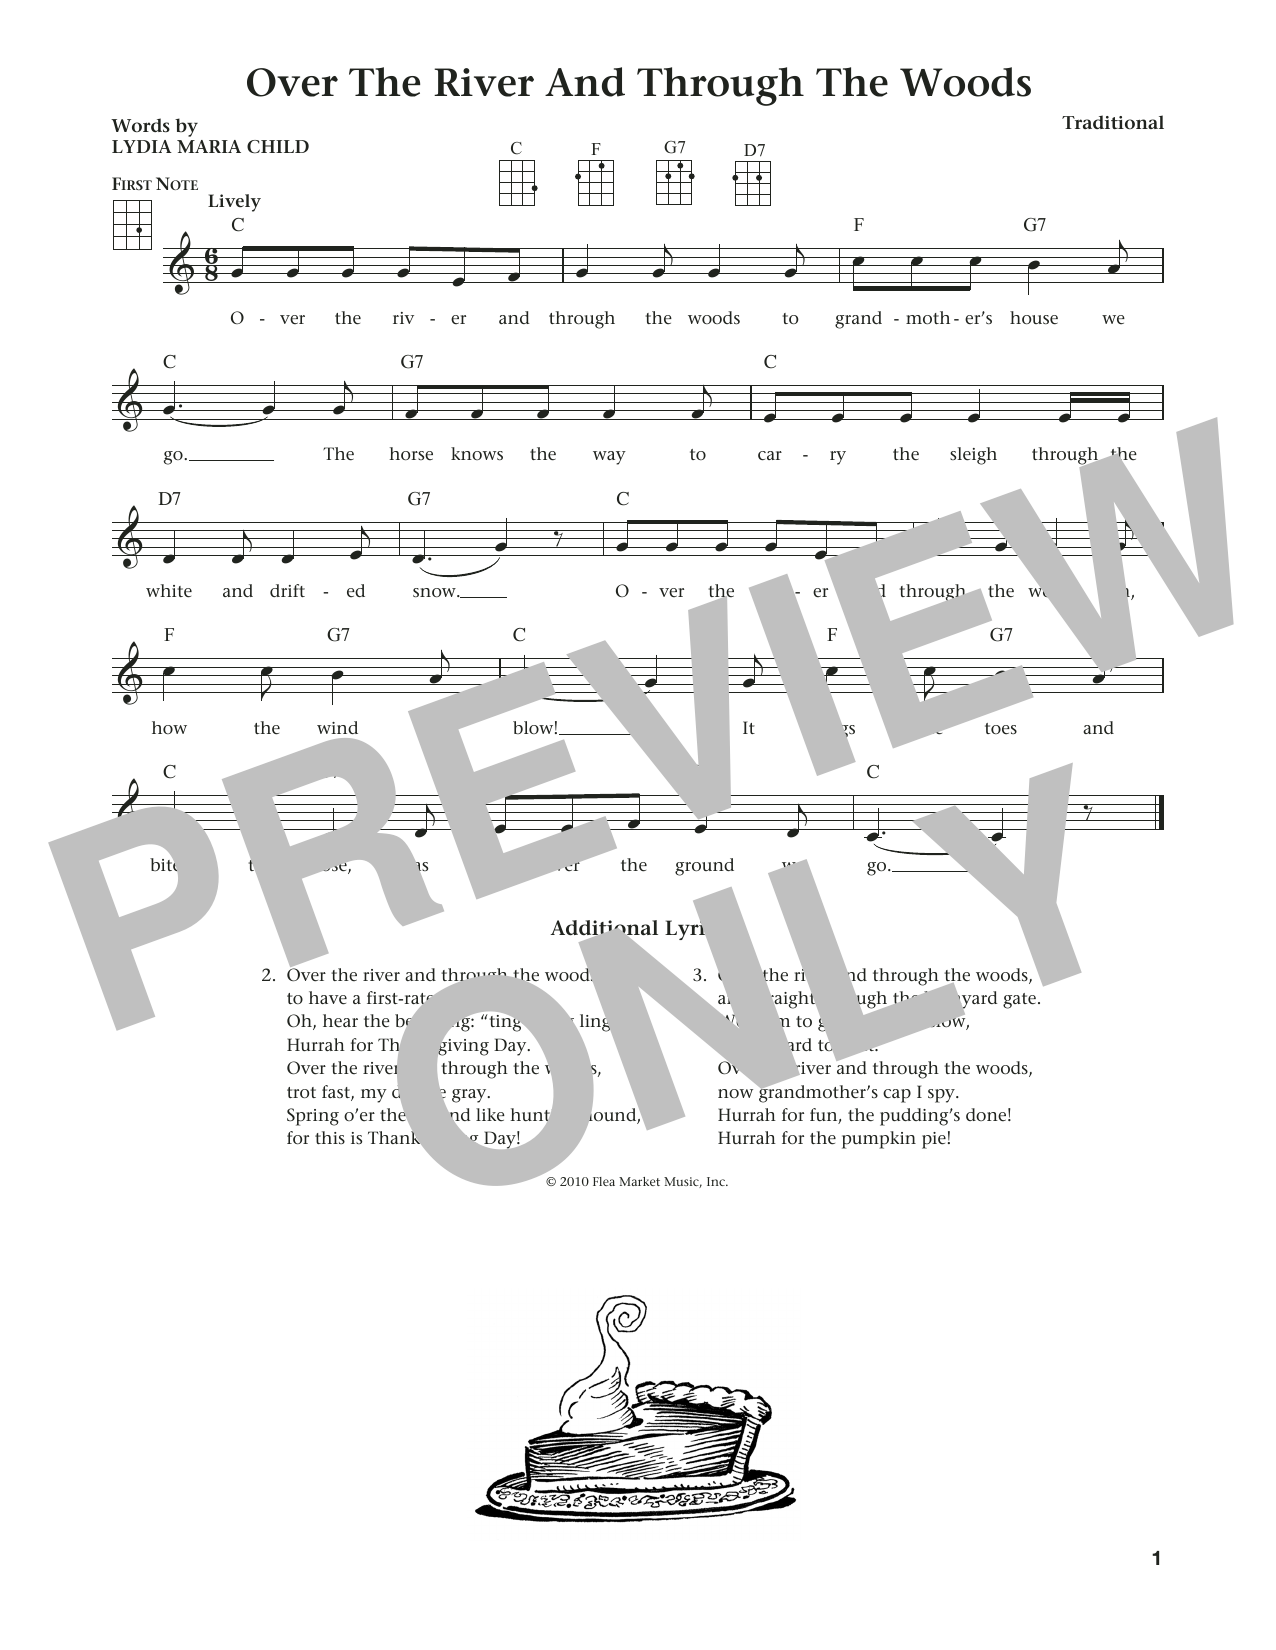 Over The River And Through The Woods (from The Daily Ukulele) (arr. Liz and Jim Beloff) (Ukulele)